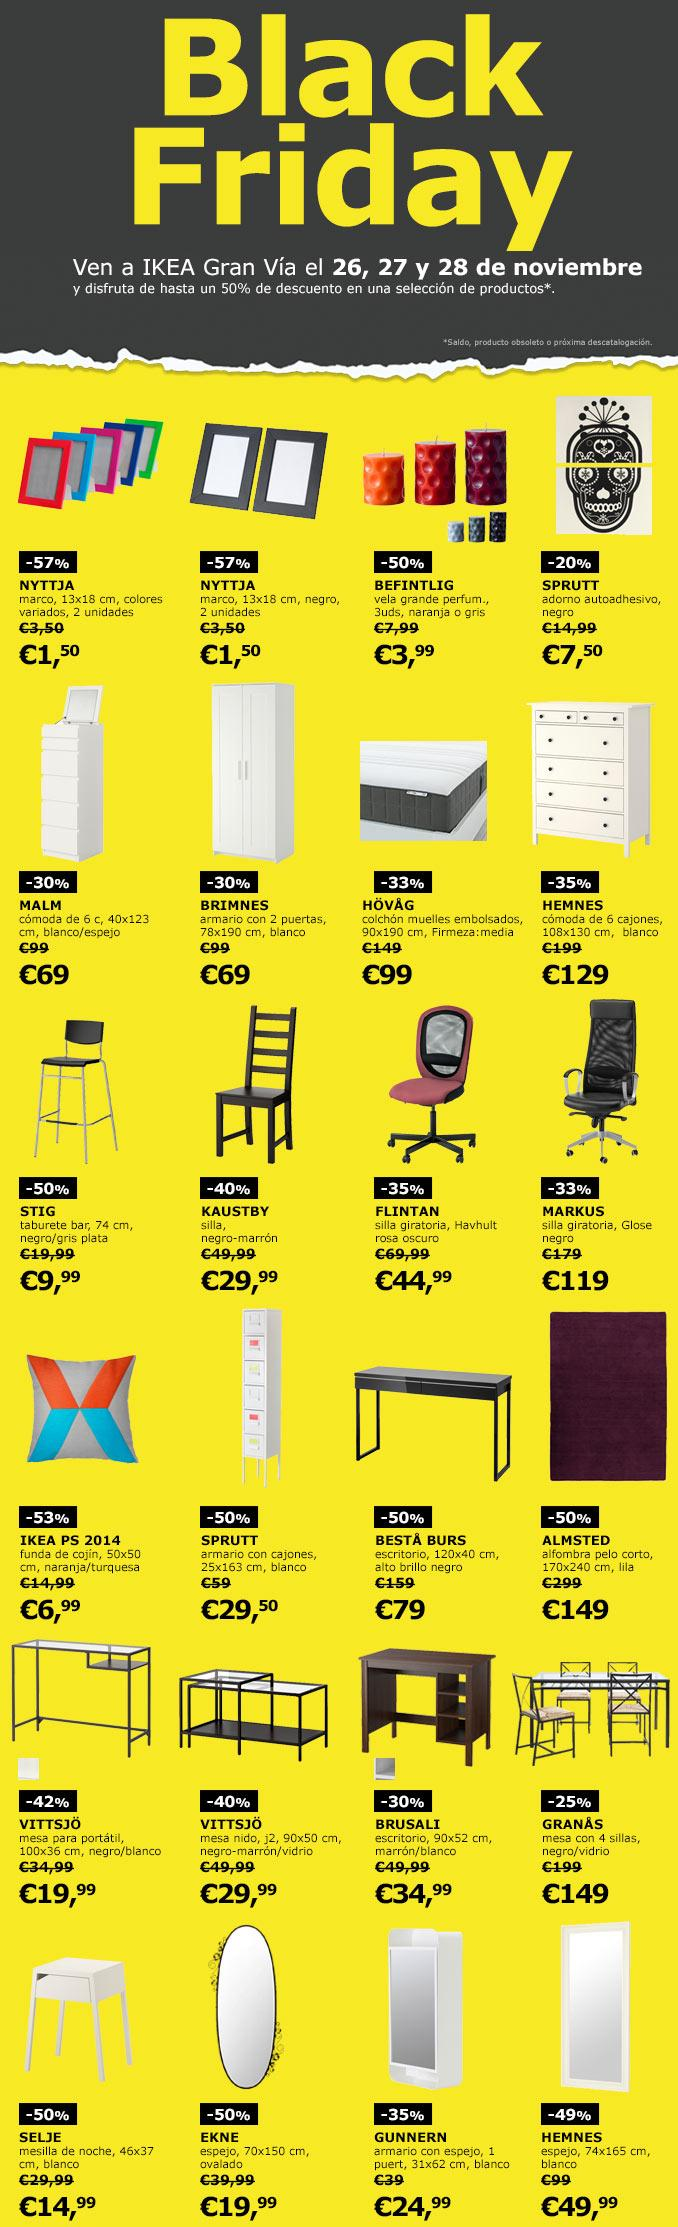 black friday ikea 2015 barcelona